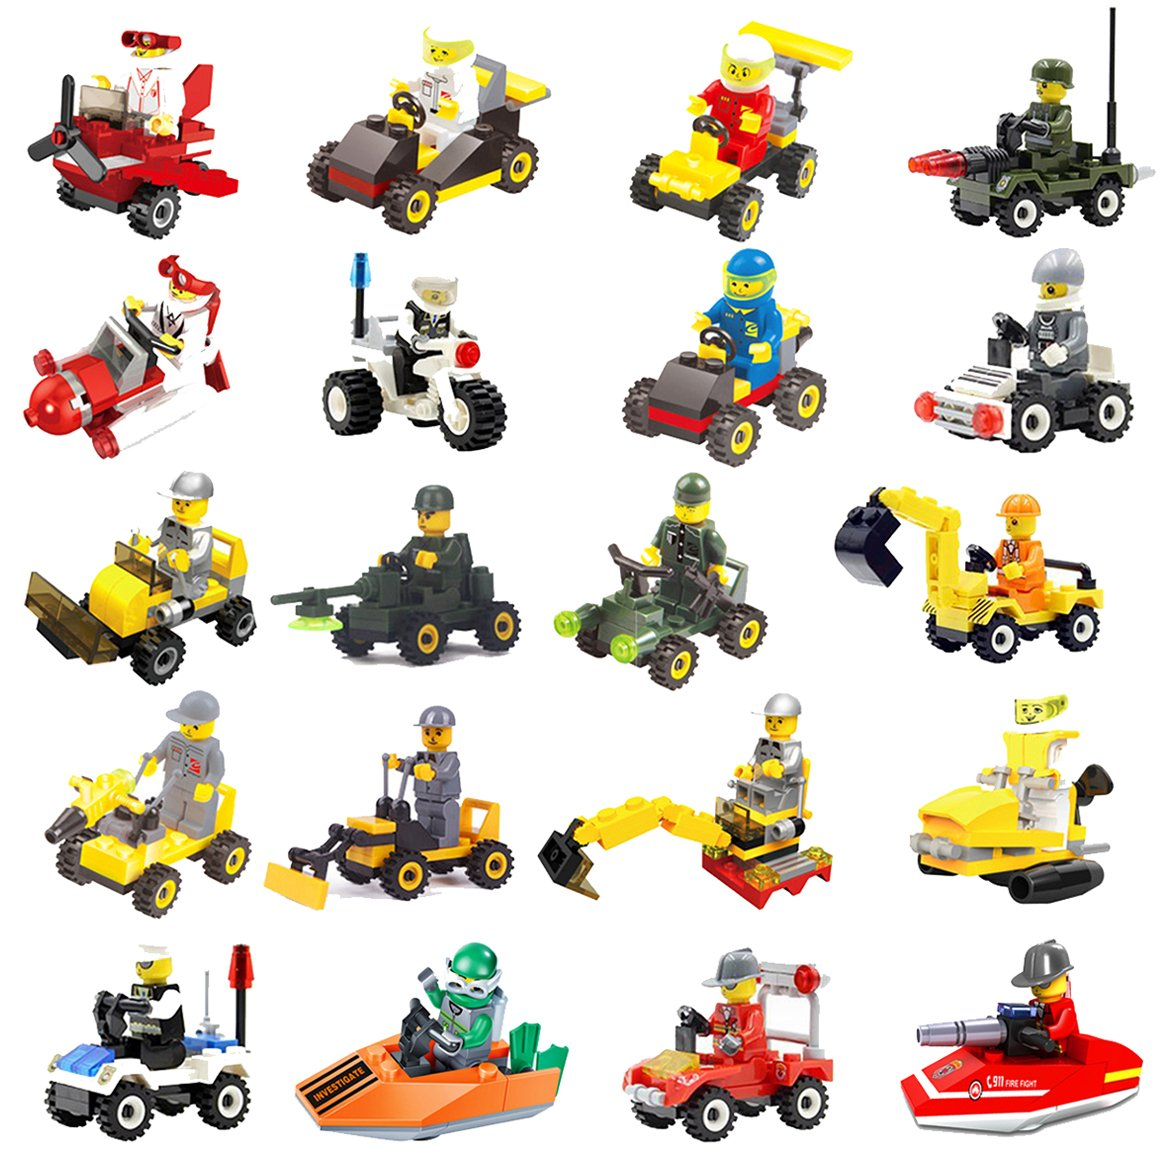 FeiZhu 20 Building Vehicles with Minifigures for Kids Party Favors,Birthday Gift for Children,100% Compatible